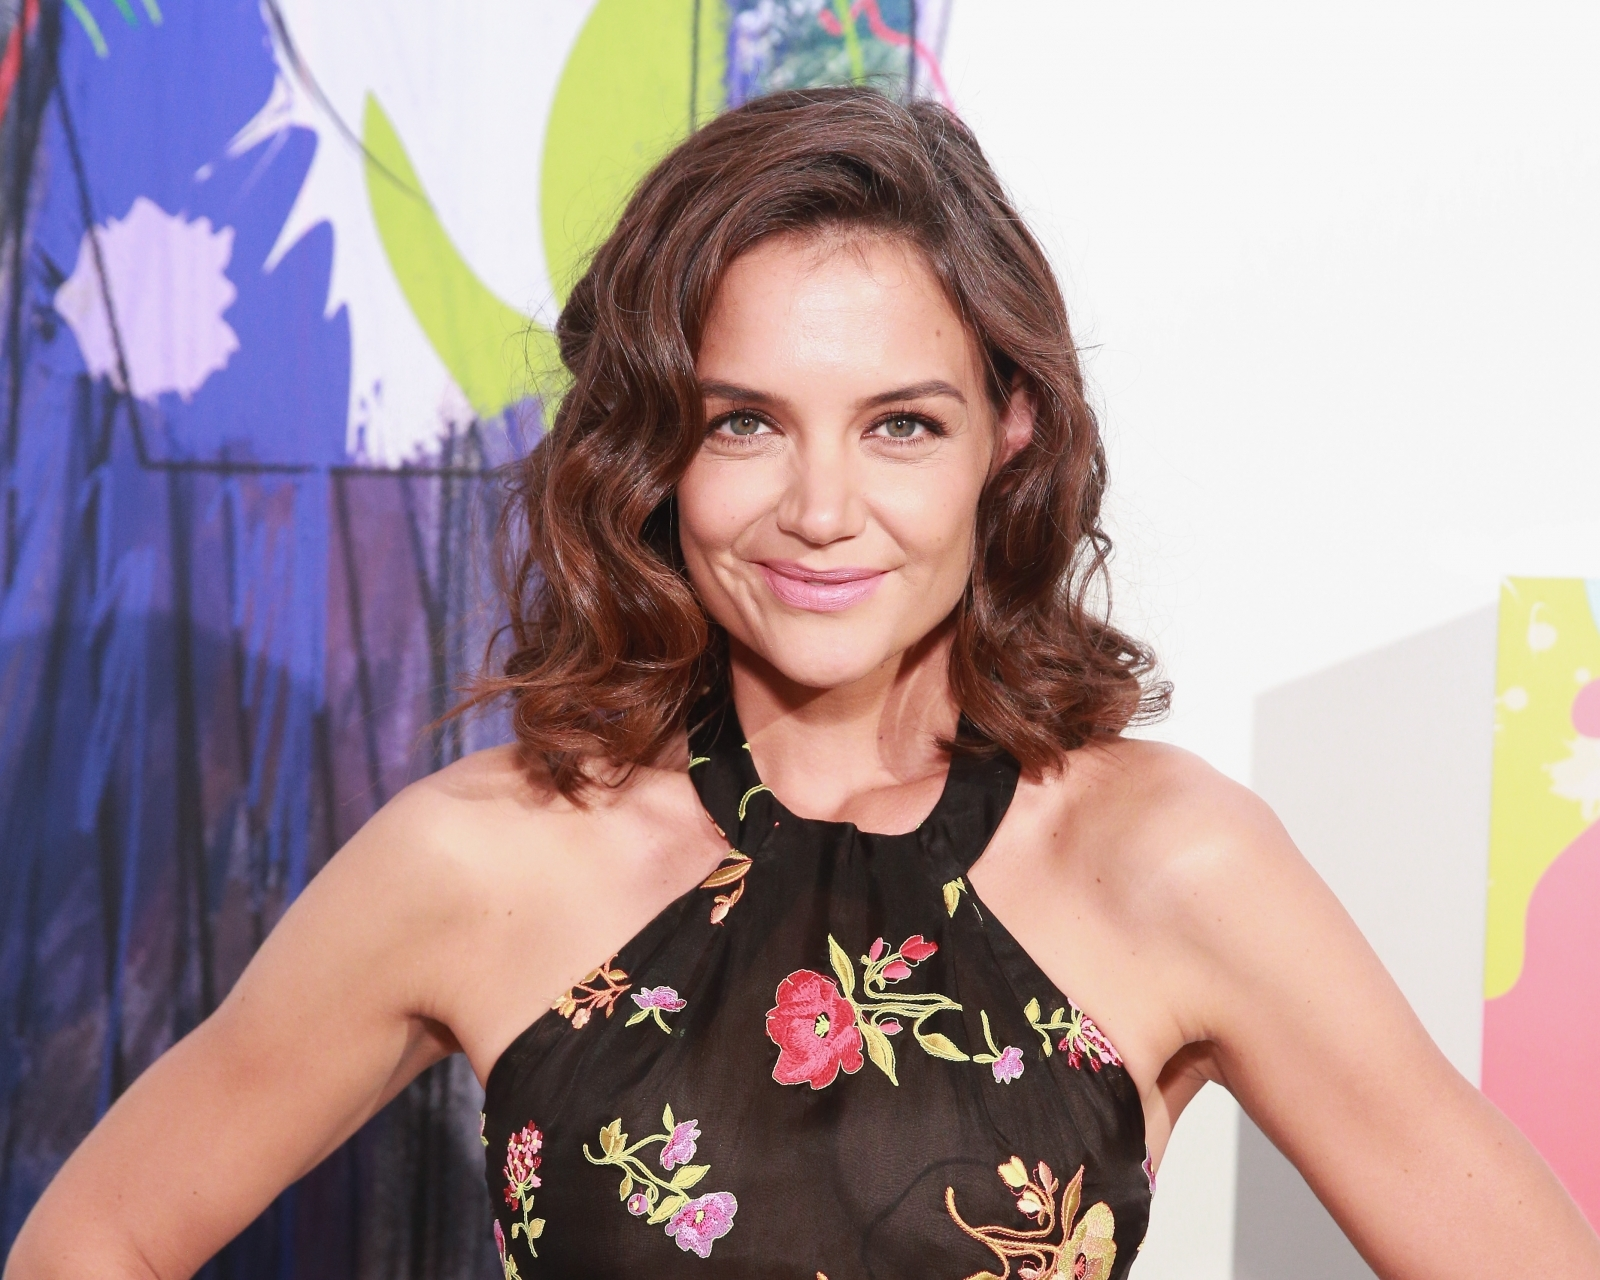 Katie Holmes Leaves Fans Speechless In Sexy Instagram